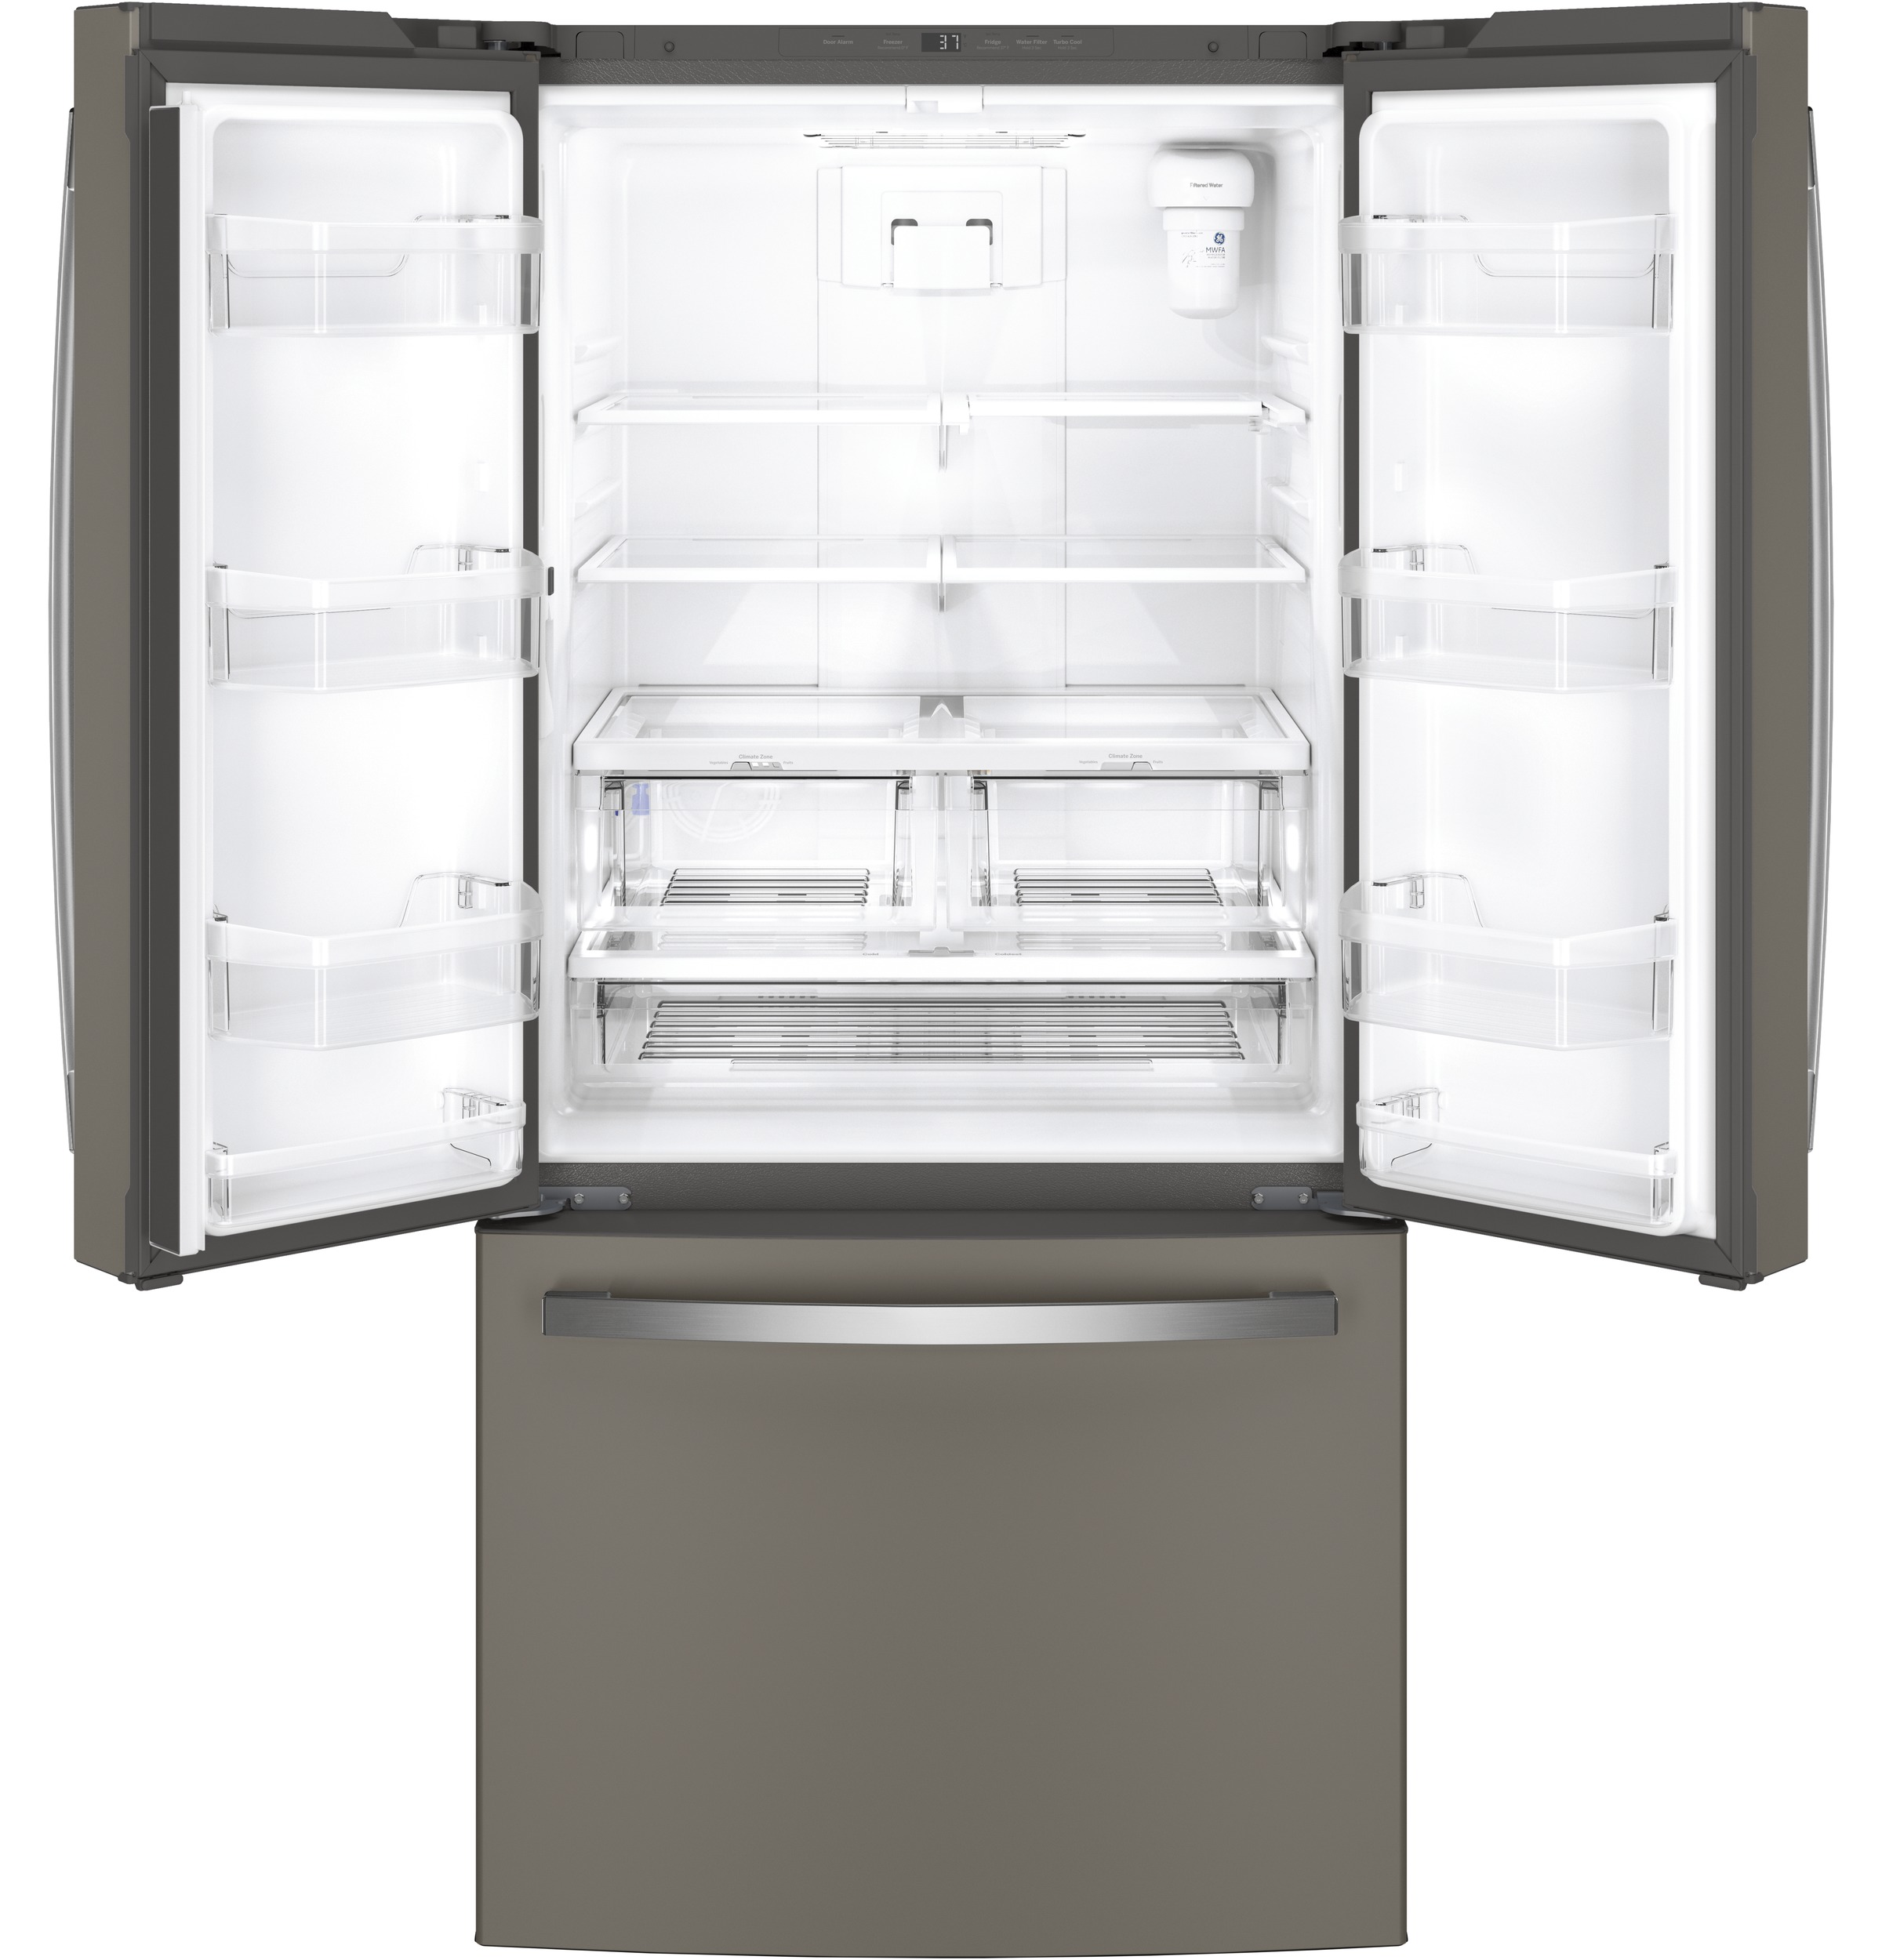 Model: GWE19JMLES | GE GE® ENERGY STAR® 18.6 Cu. Ft. Counter-Depth French-Door Refrigerator